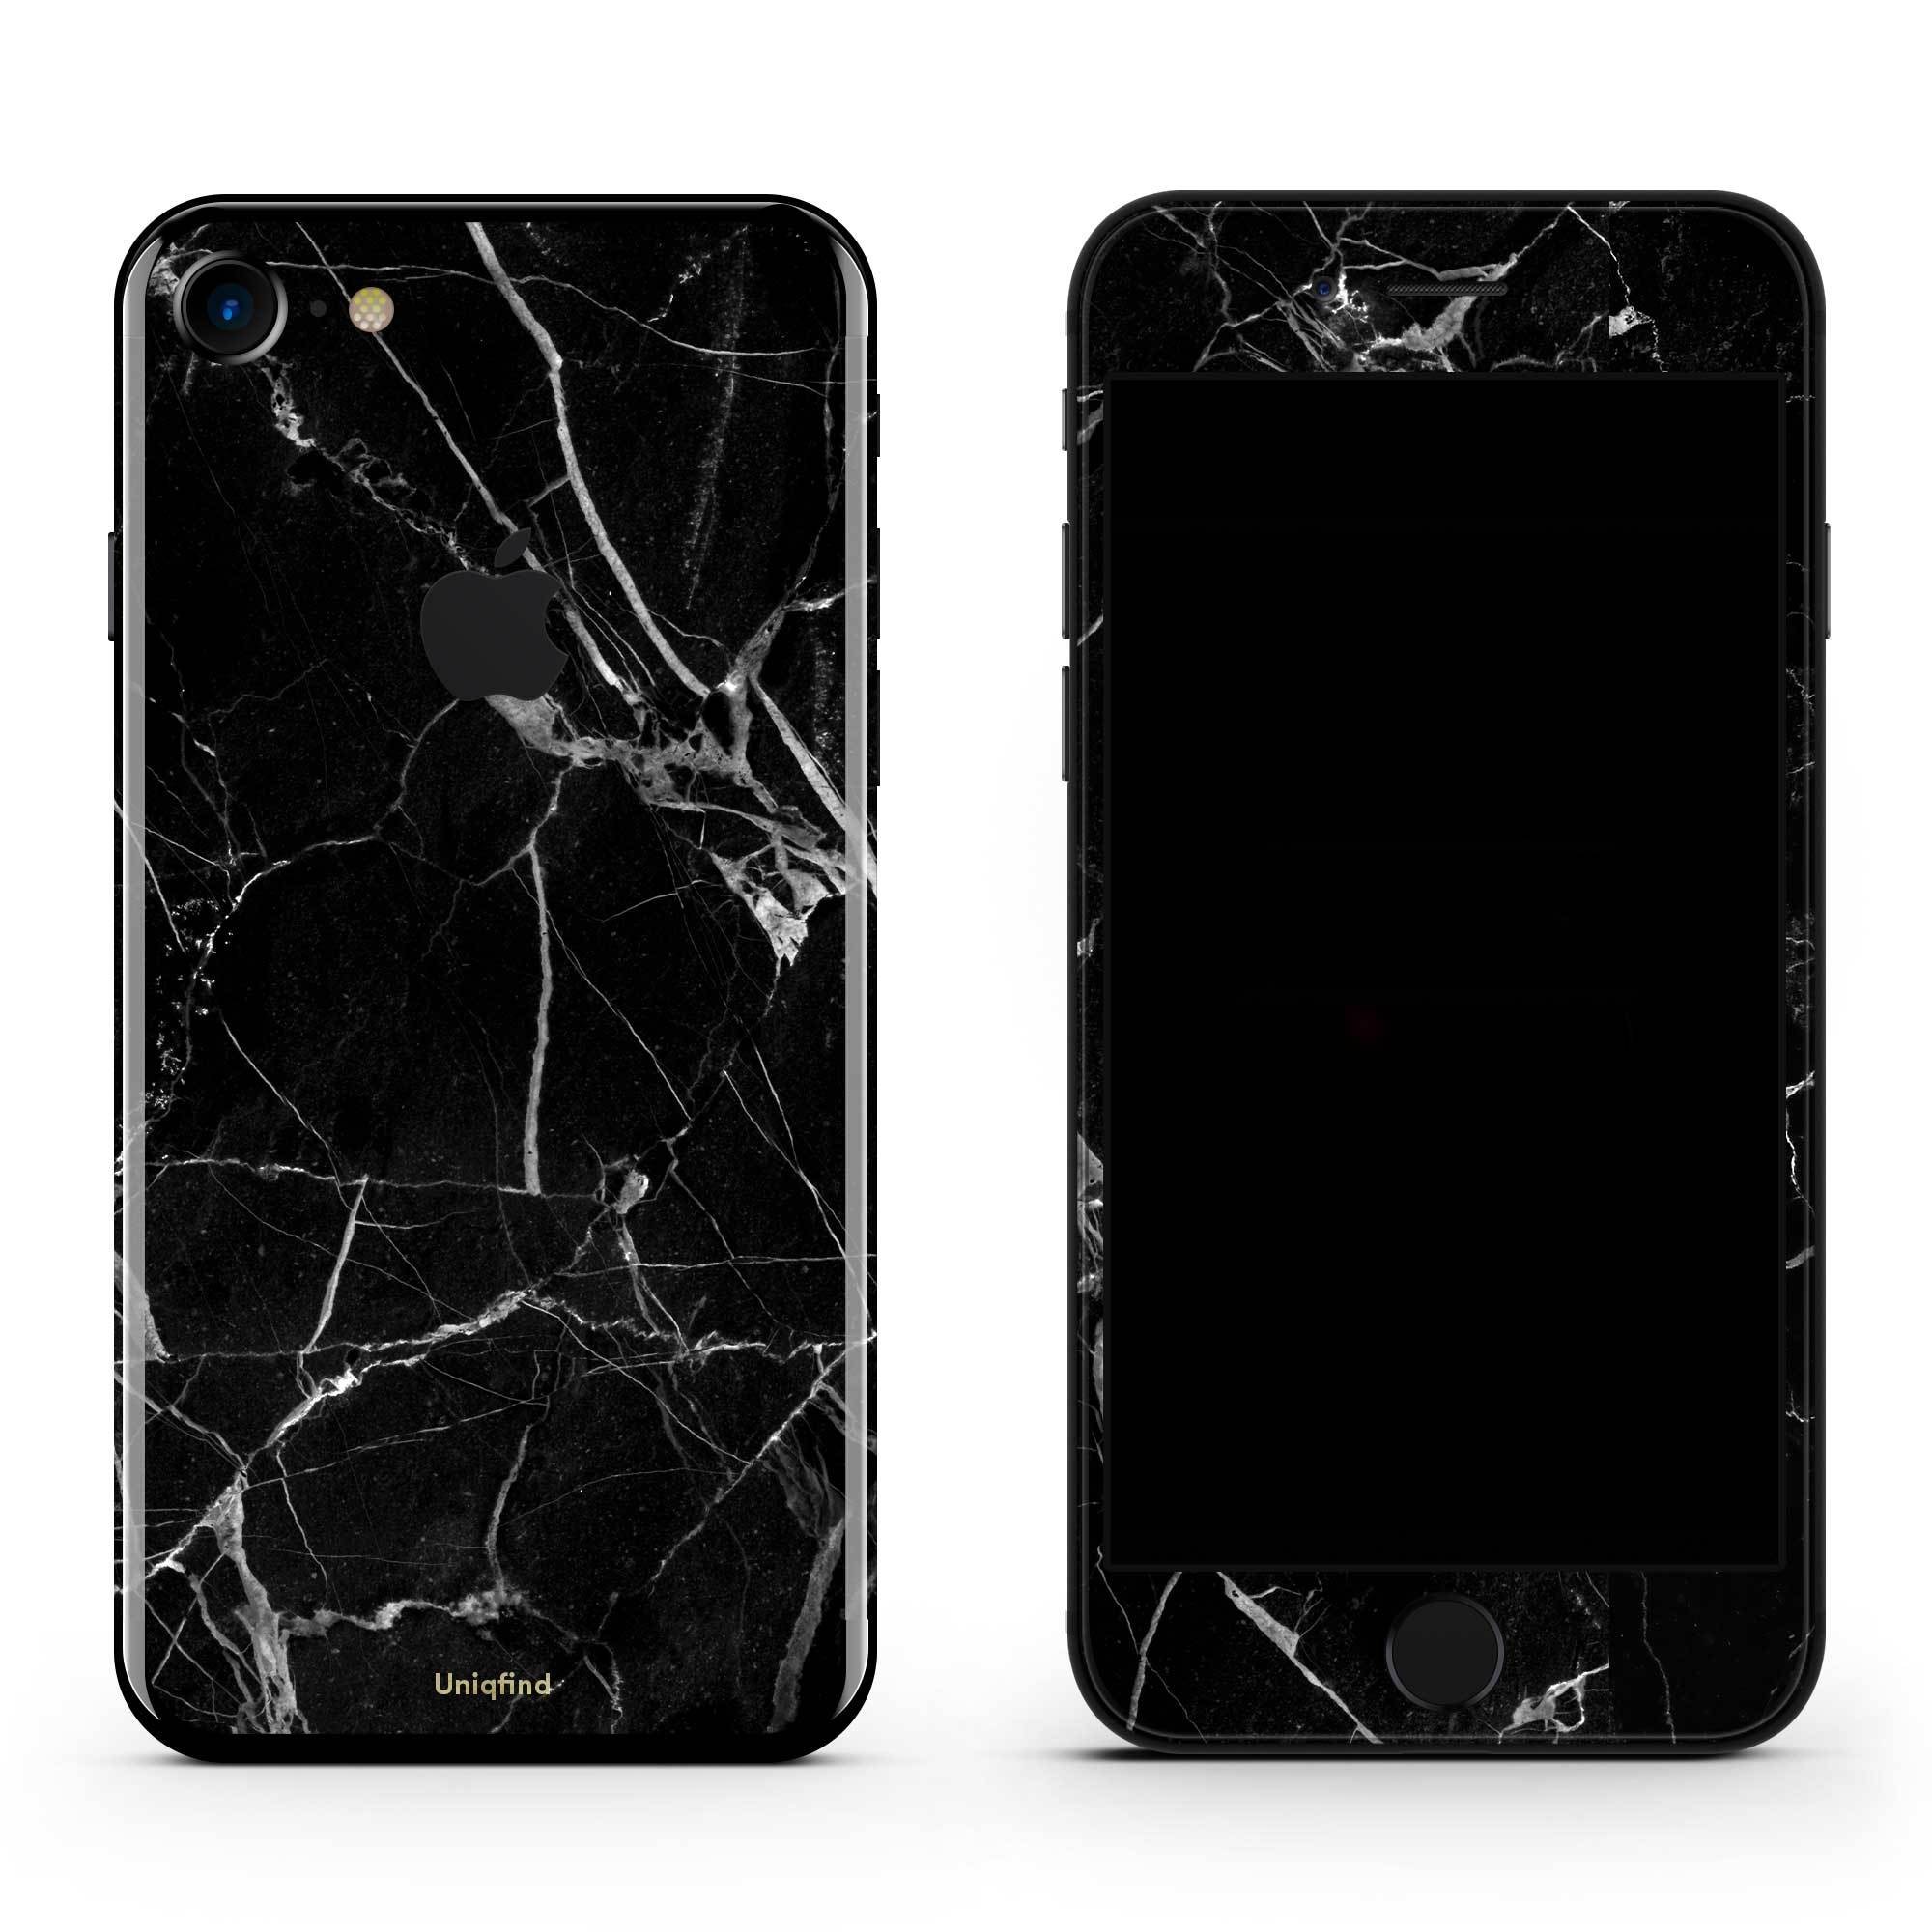 Black Hyper Marble iPhone 8 Plus Skin + Case